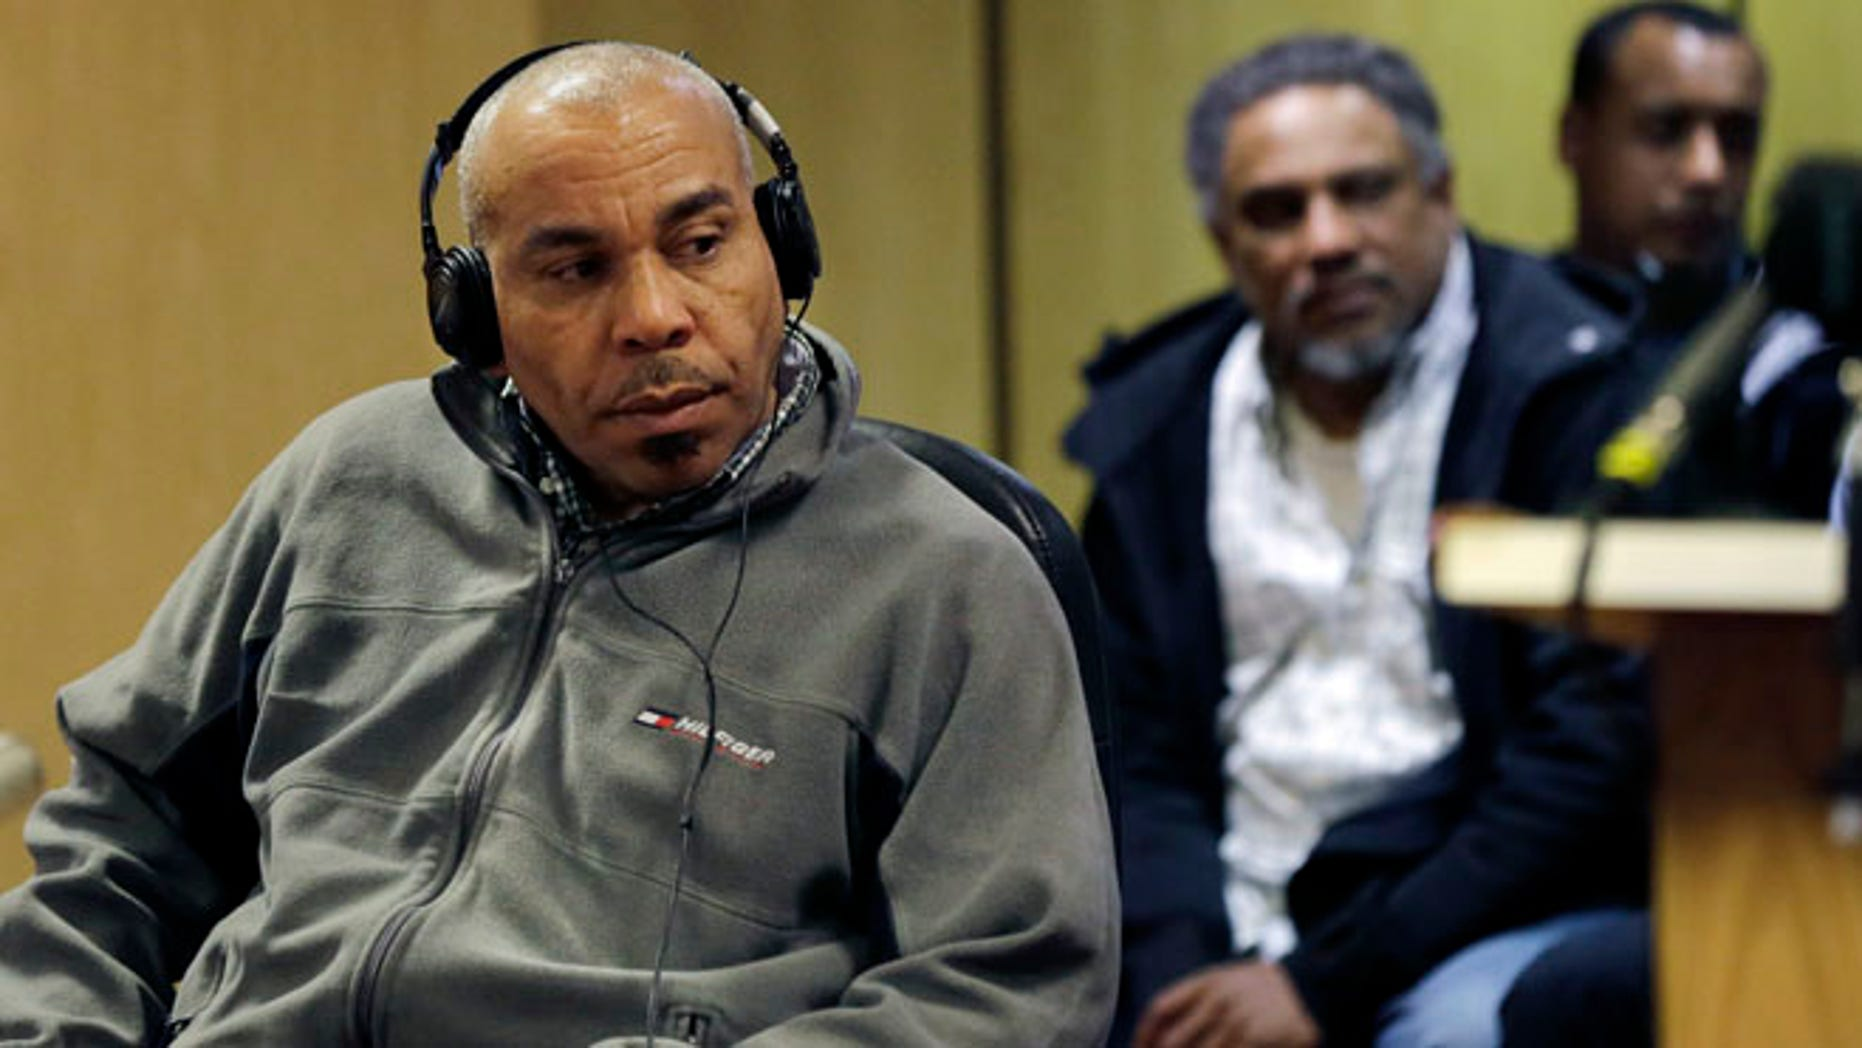 April 1: Pedro Quezada the New Jersey man who just won a $338 million Powerball jackpot, listens to an interpreter during his appearance in state Superior Court in Paterson, N.J.